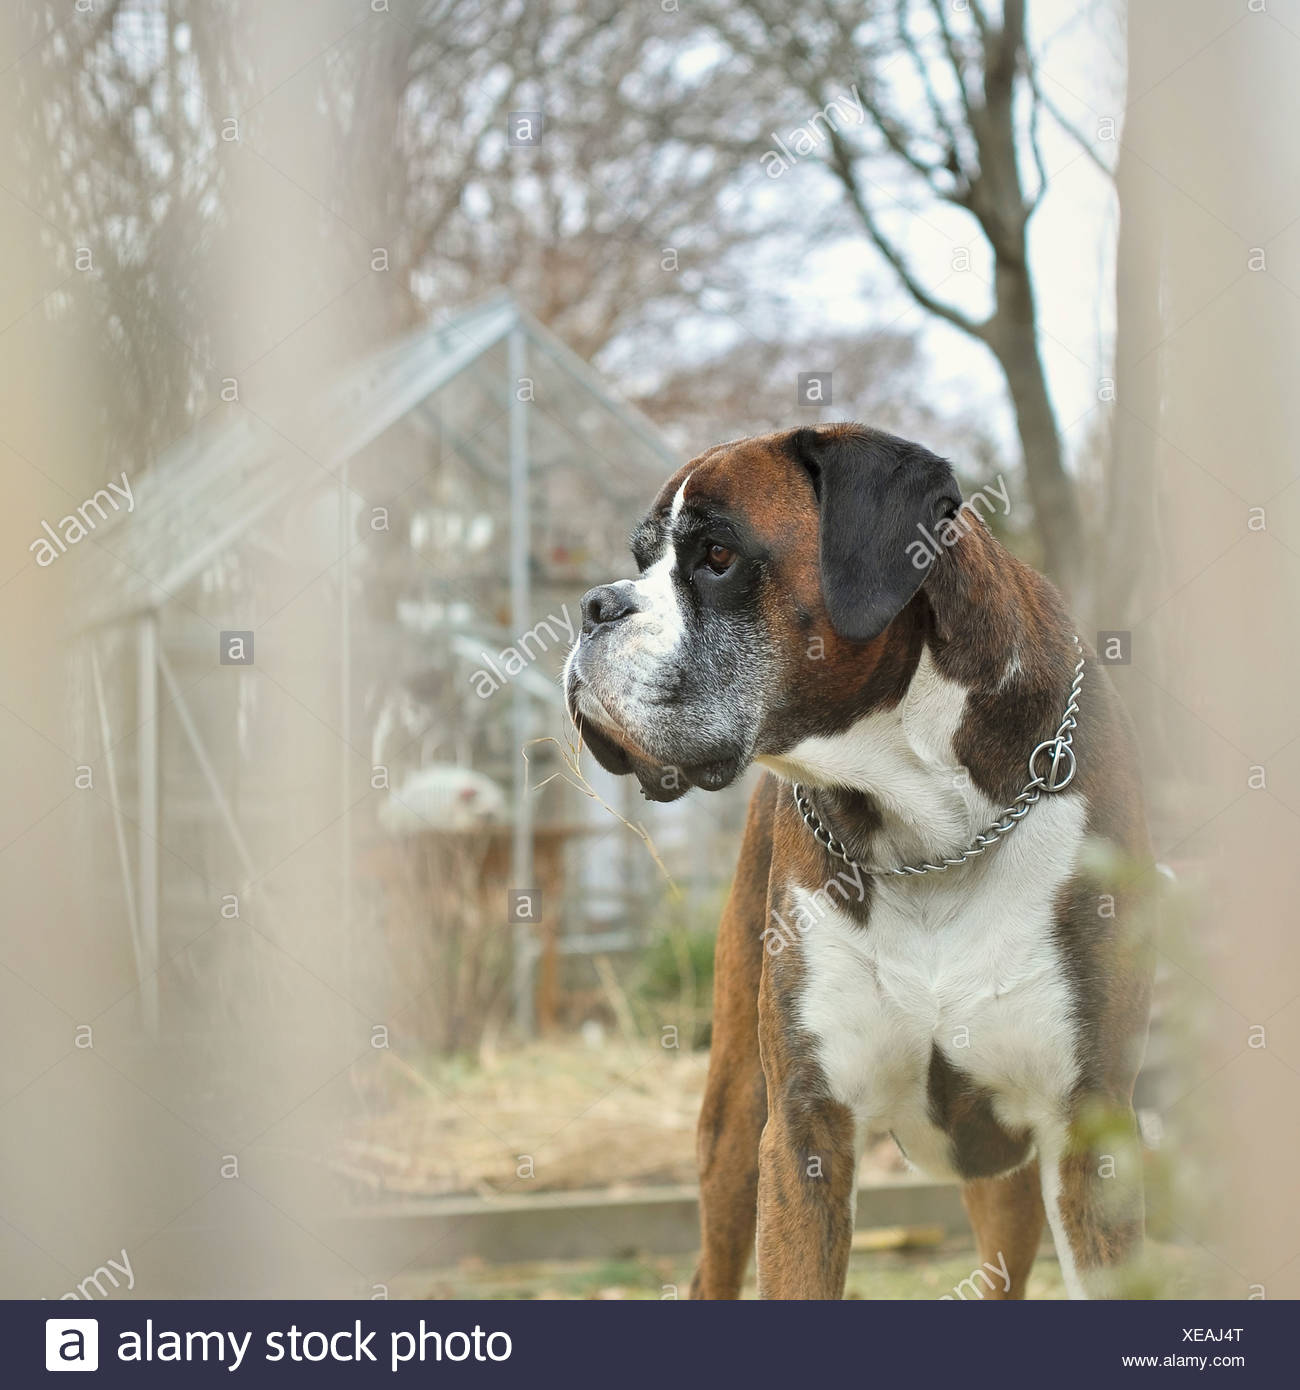 Close-up of brown dog looking away - Stock Image